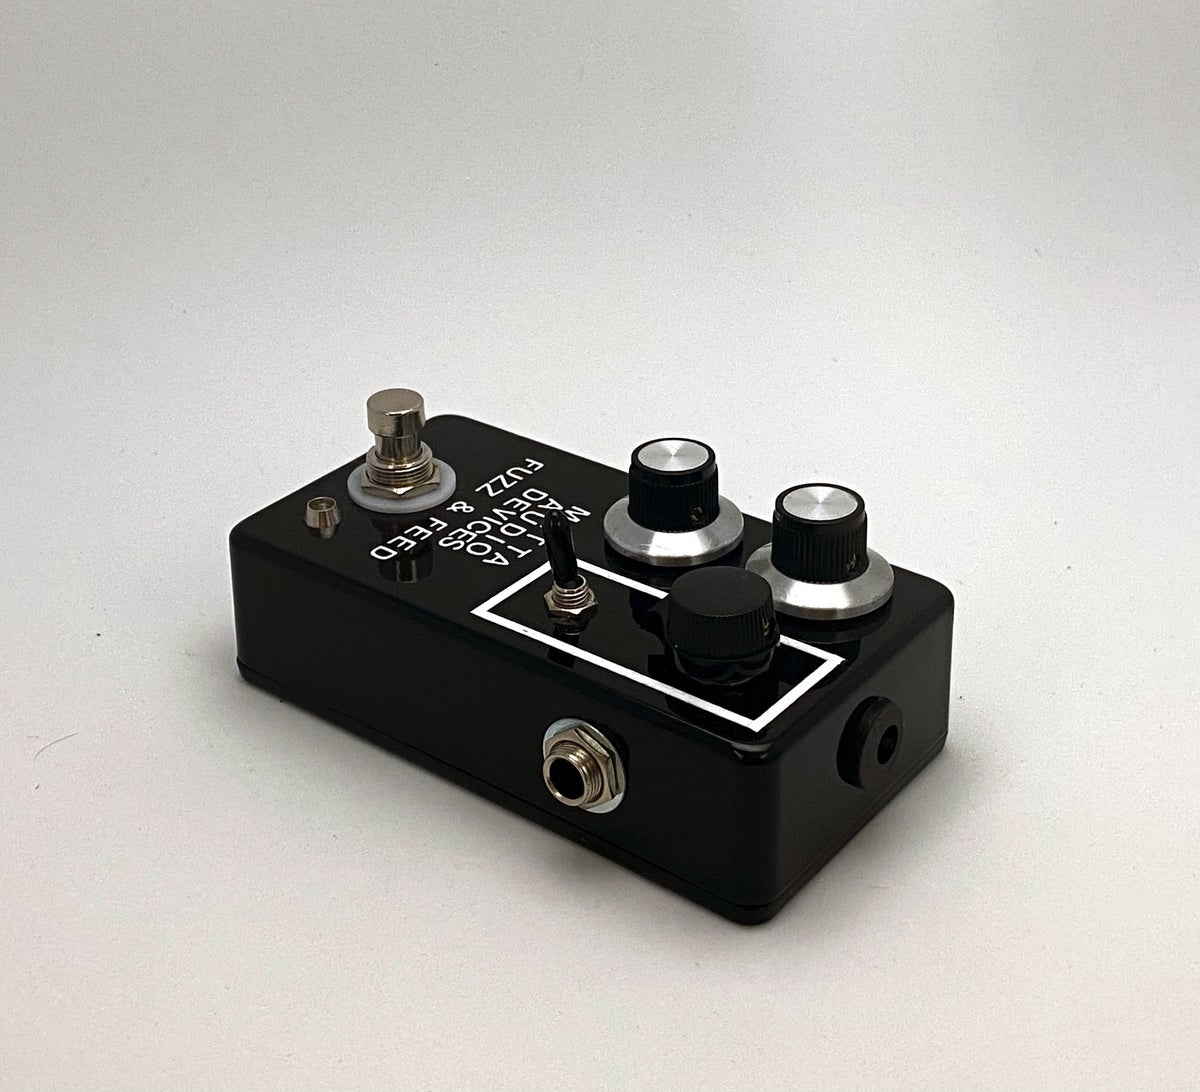 Image of Metta Fuzz & Feed / Fuzz and Feedback Oscillator Device